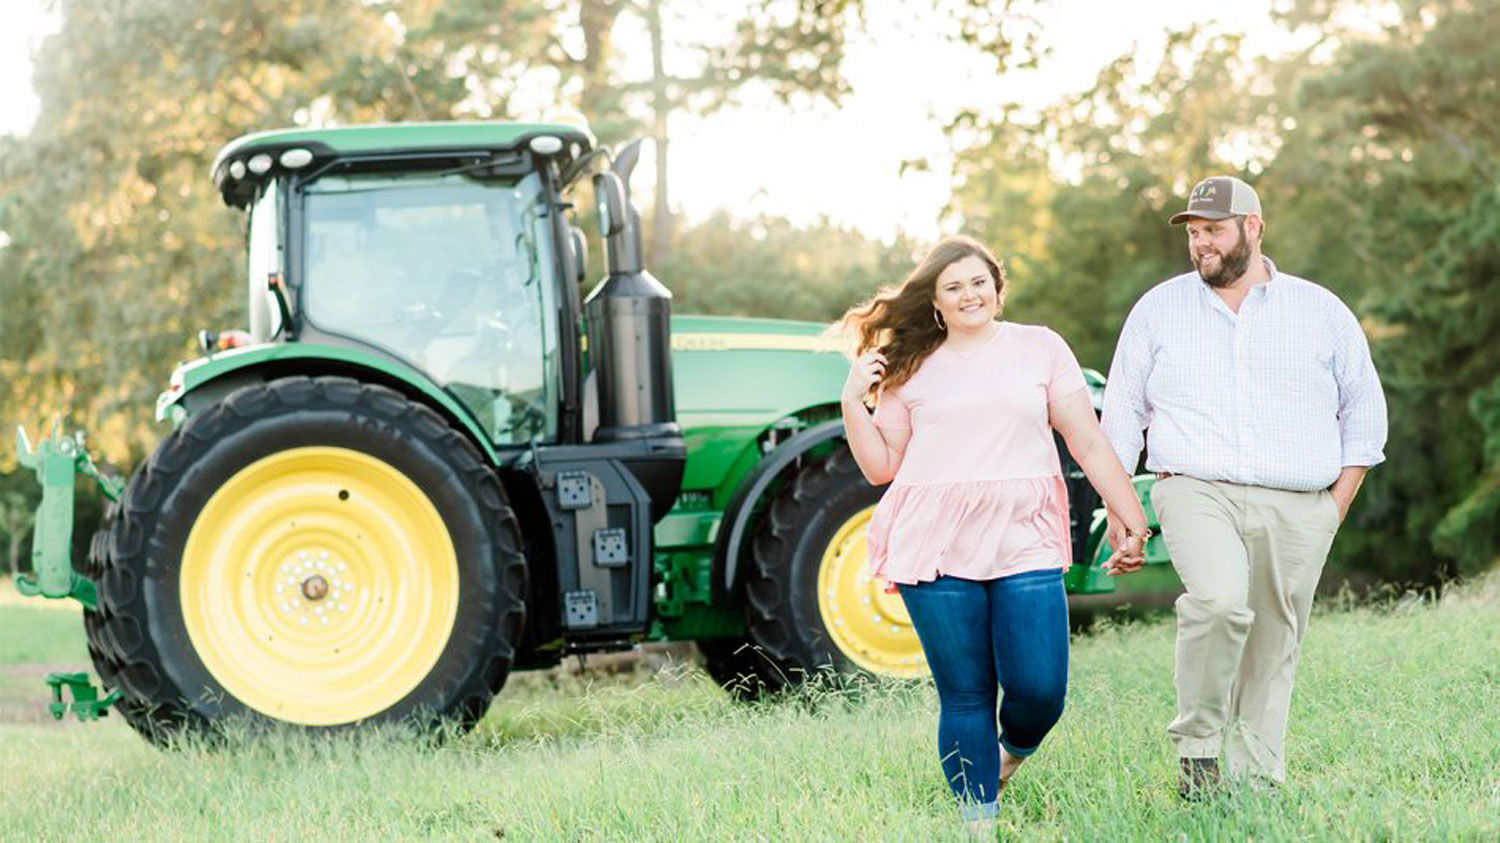 A young woman and man hold hands ina field with a tractor behind them